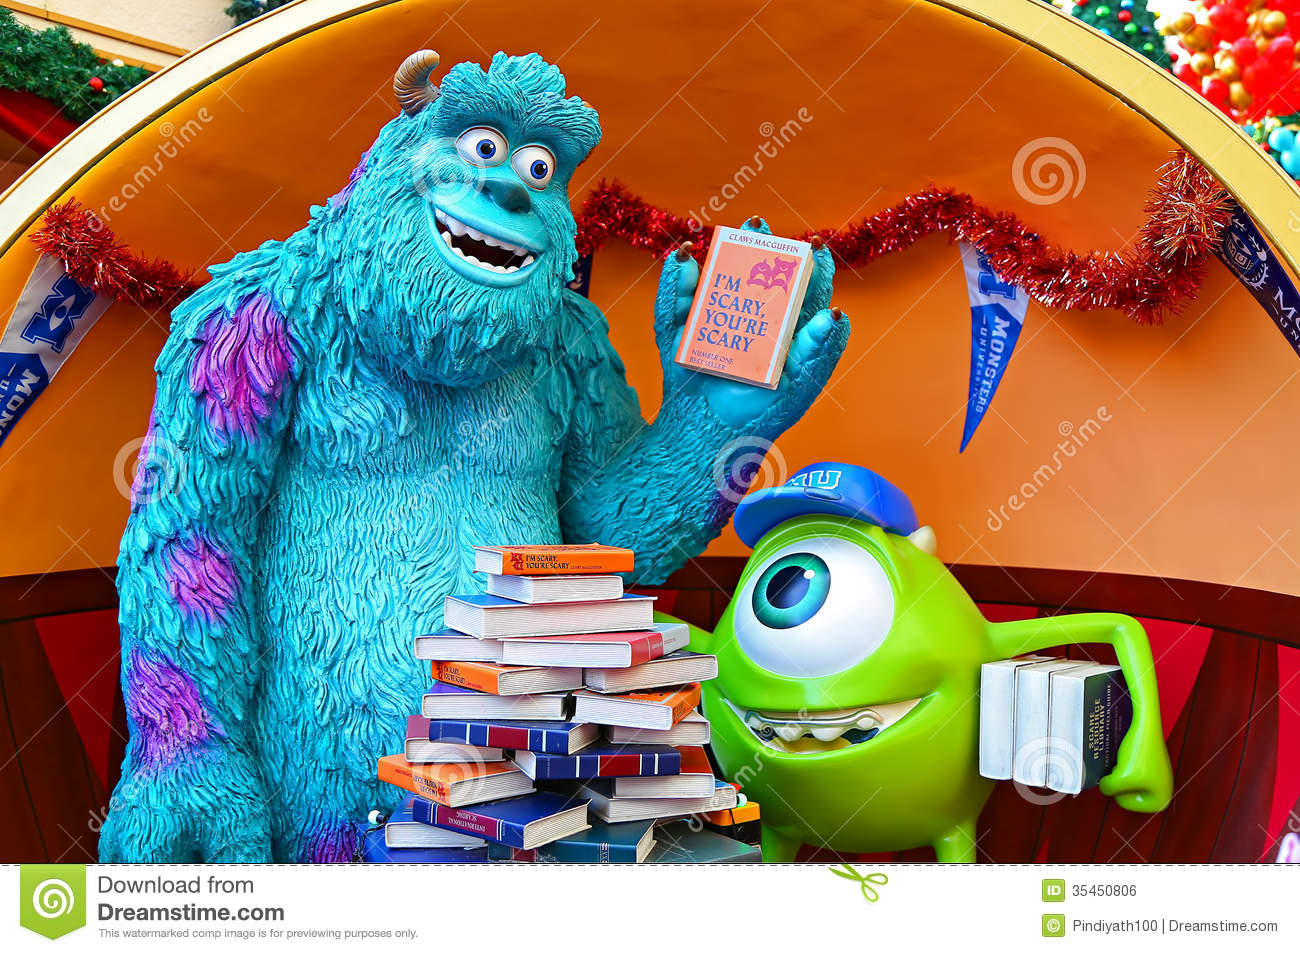 disney pixar monsters characters editorial photo image of